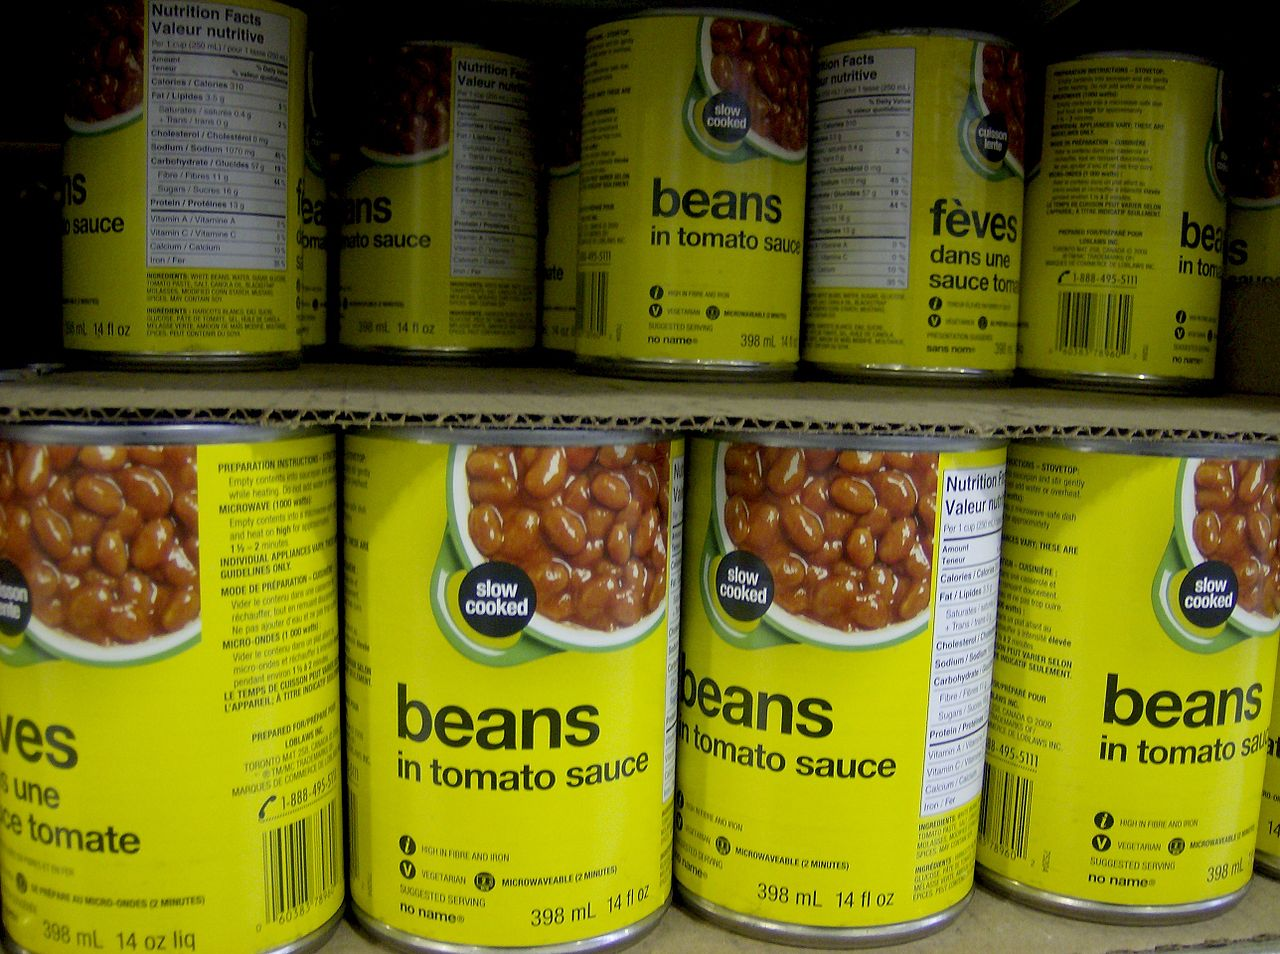 5 Foods You Should Never Buy Canned